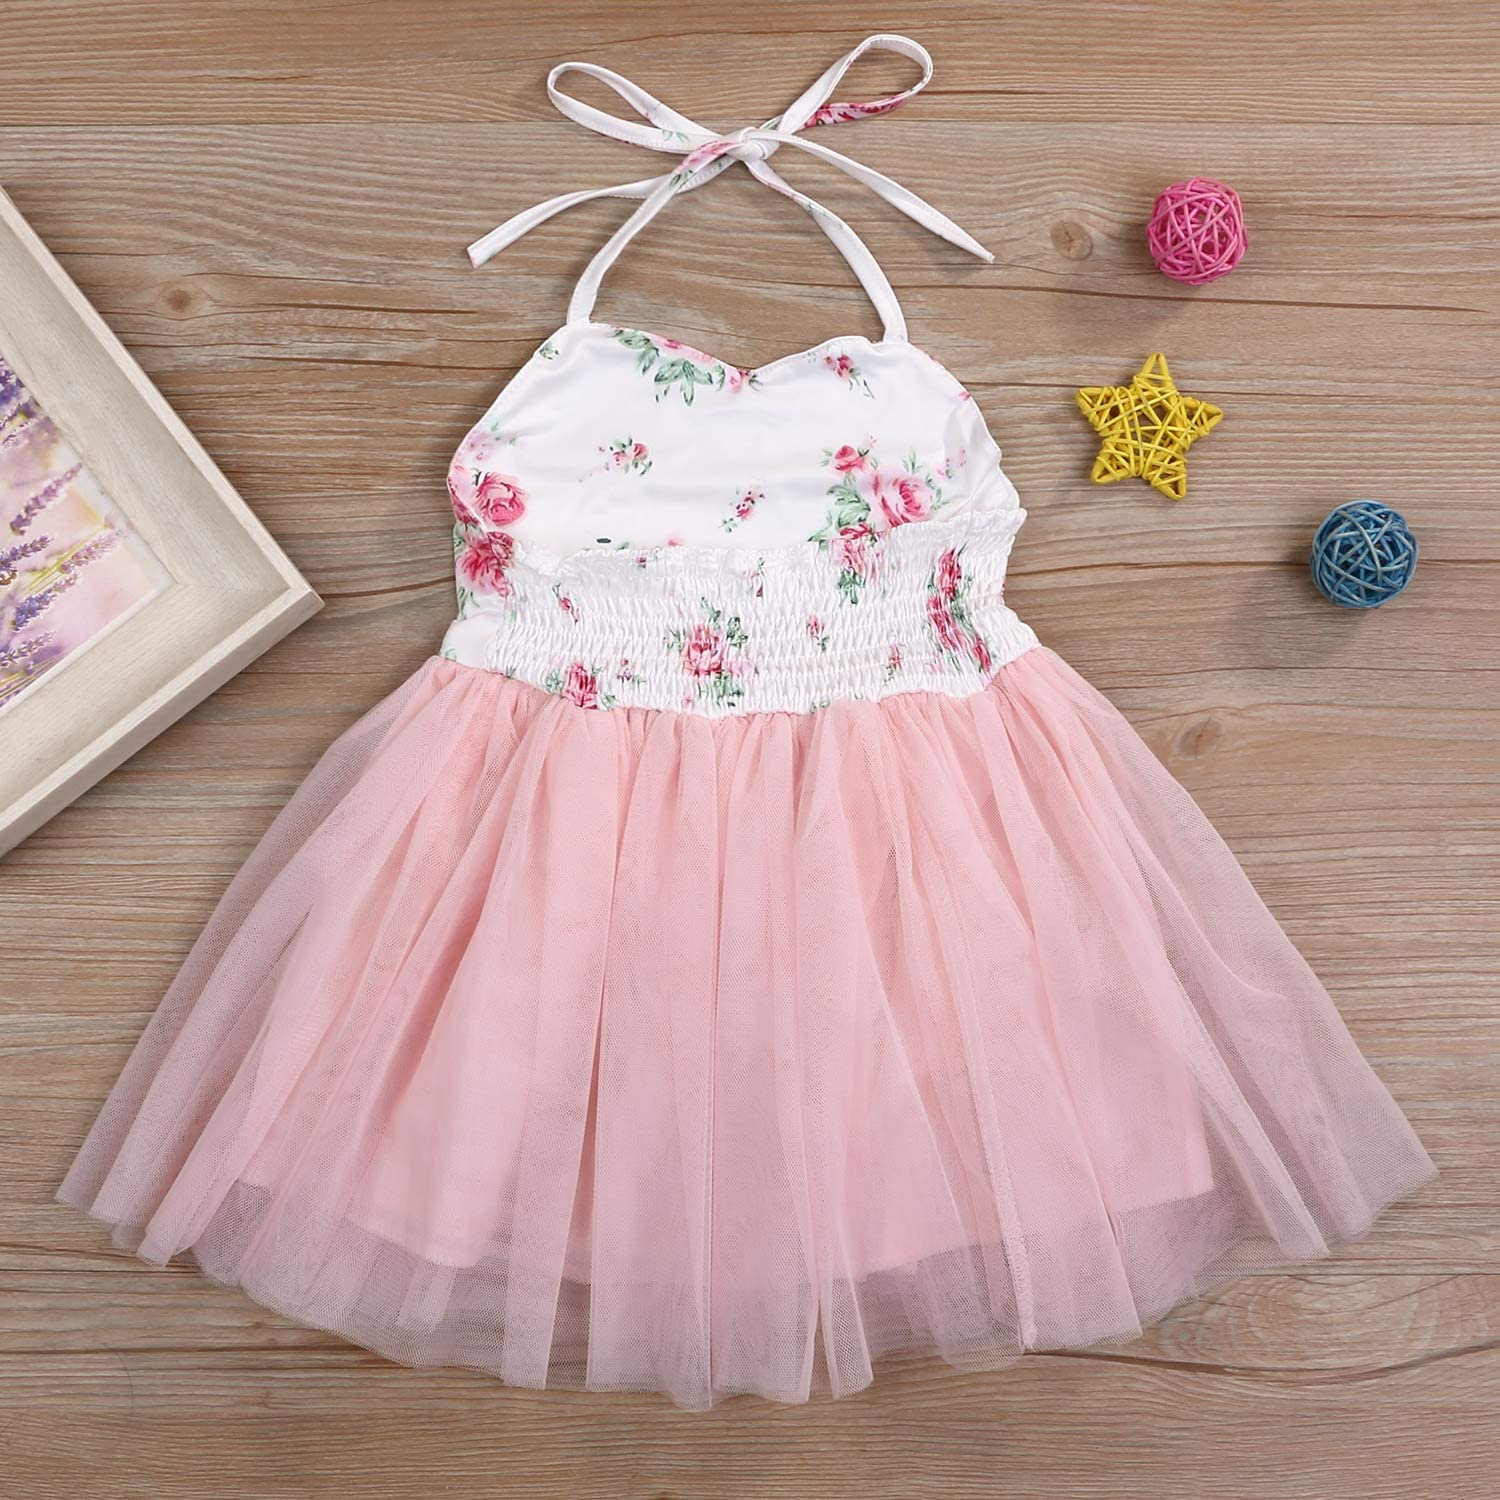 Baby Girl Summer Outfits 1st Birthday Romper Top Long Sleeve Floral Tutu Skirt 2Pcs Clothing Set